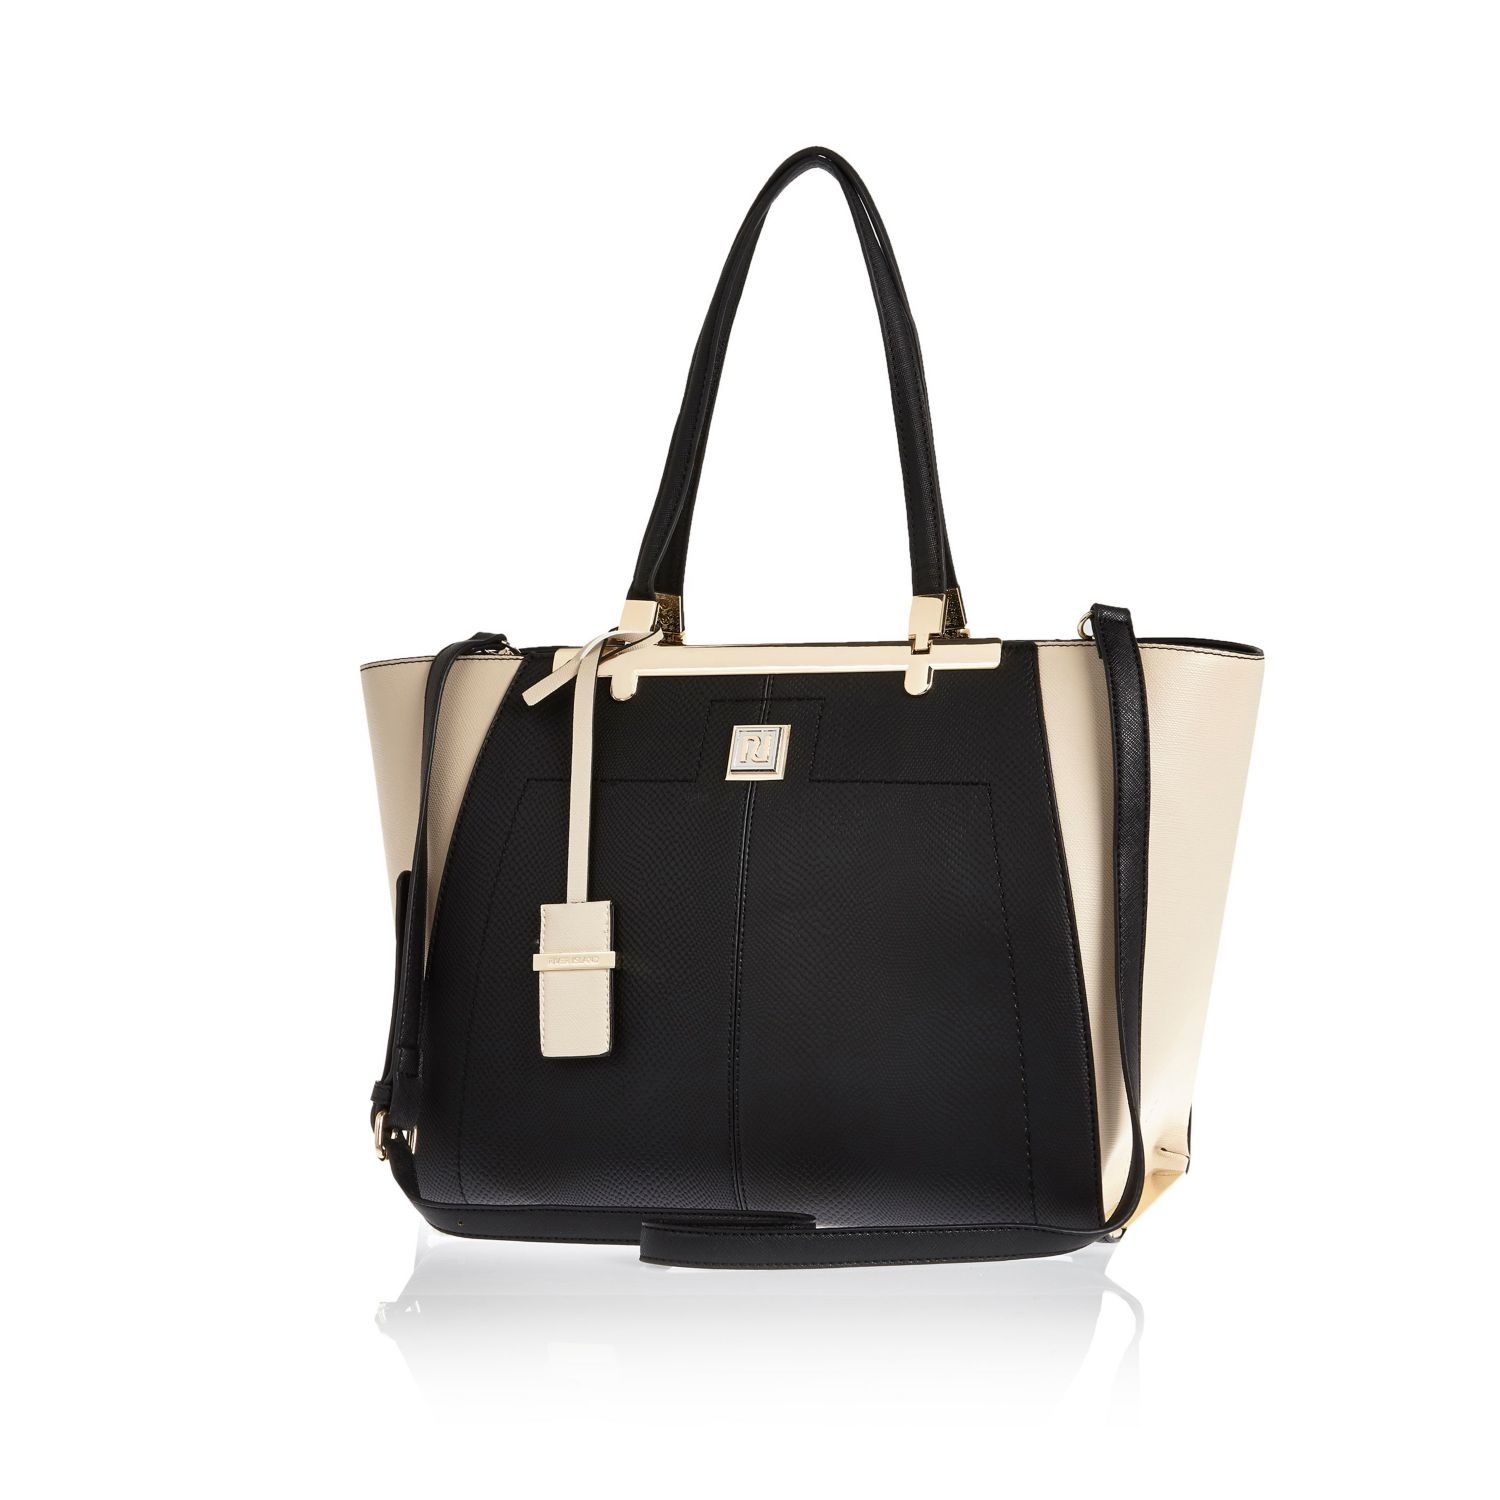 Black River Island Tote Bag